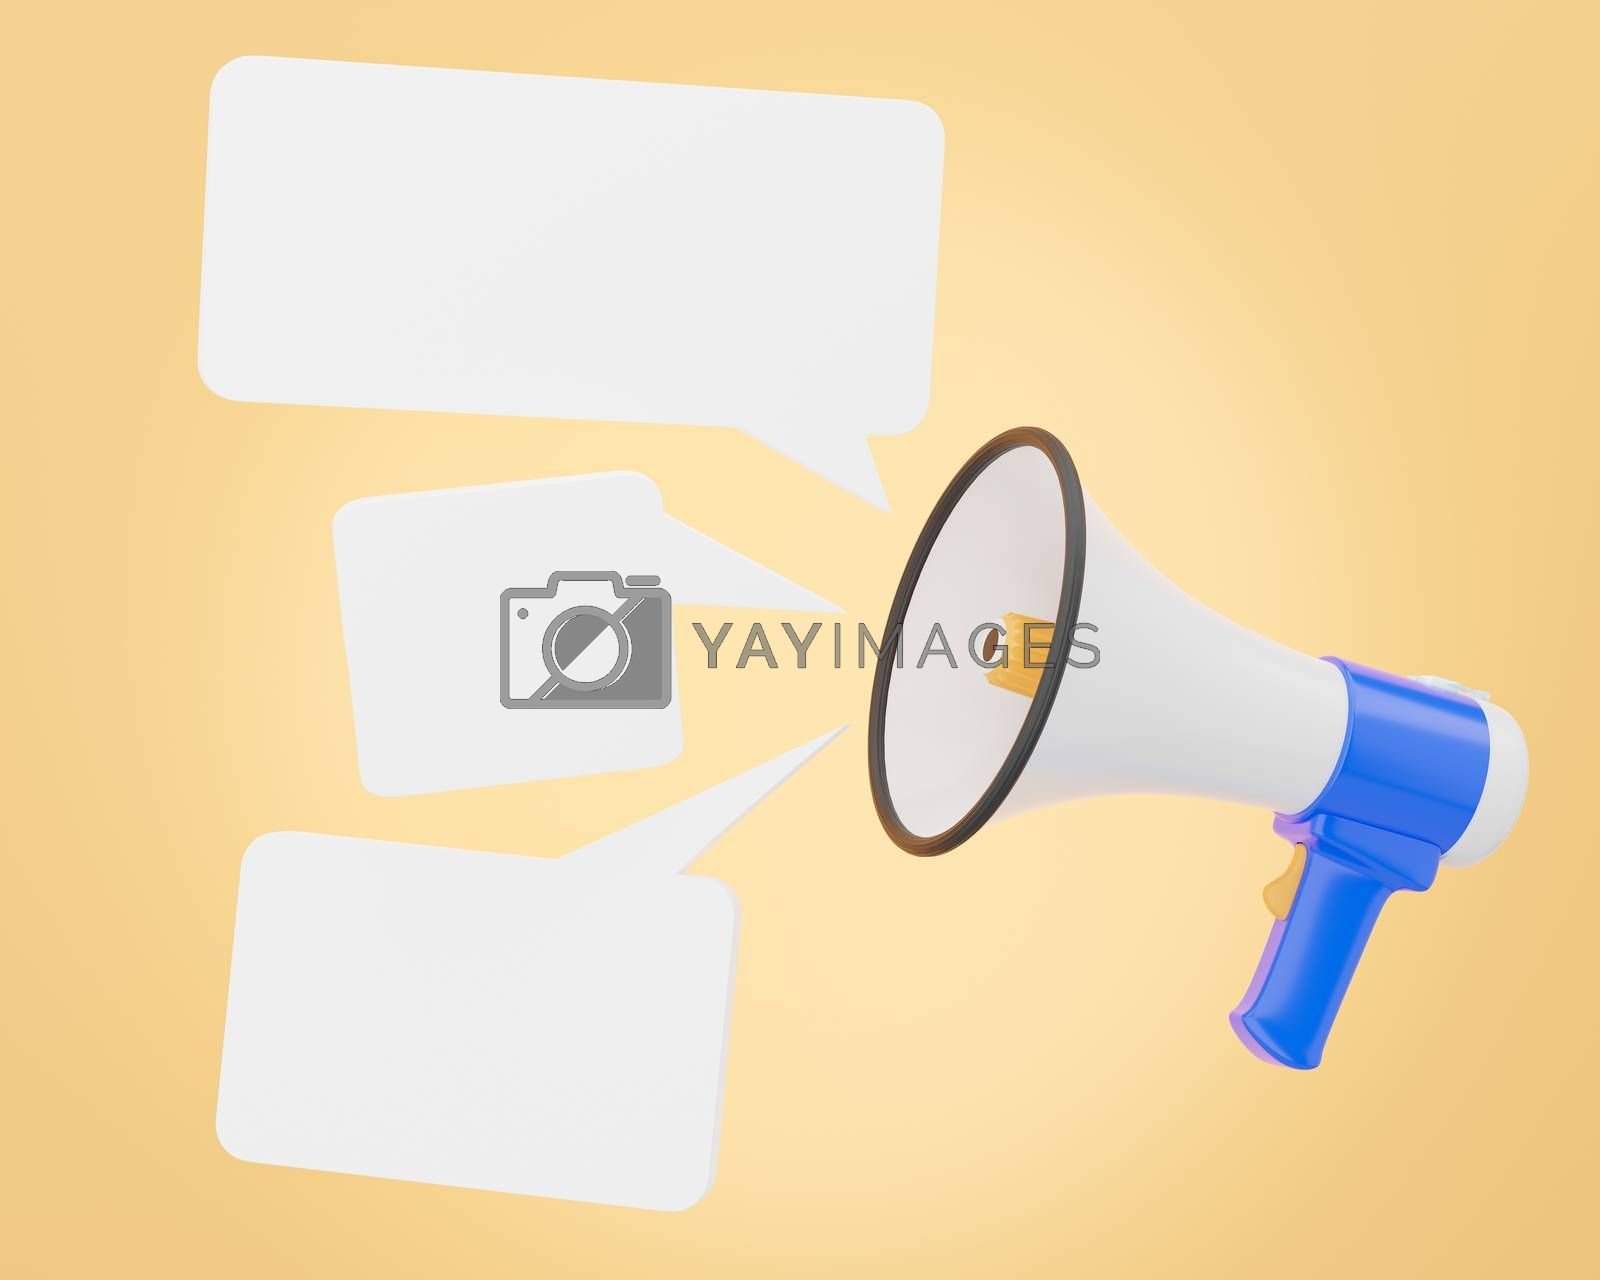 The megaphone is voicing notification sound and appears as an empty message box for advertising bullhorn or blue and white loudspeaker on orange background. Concept of communication. 3D illustration.